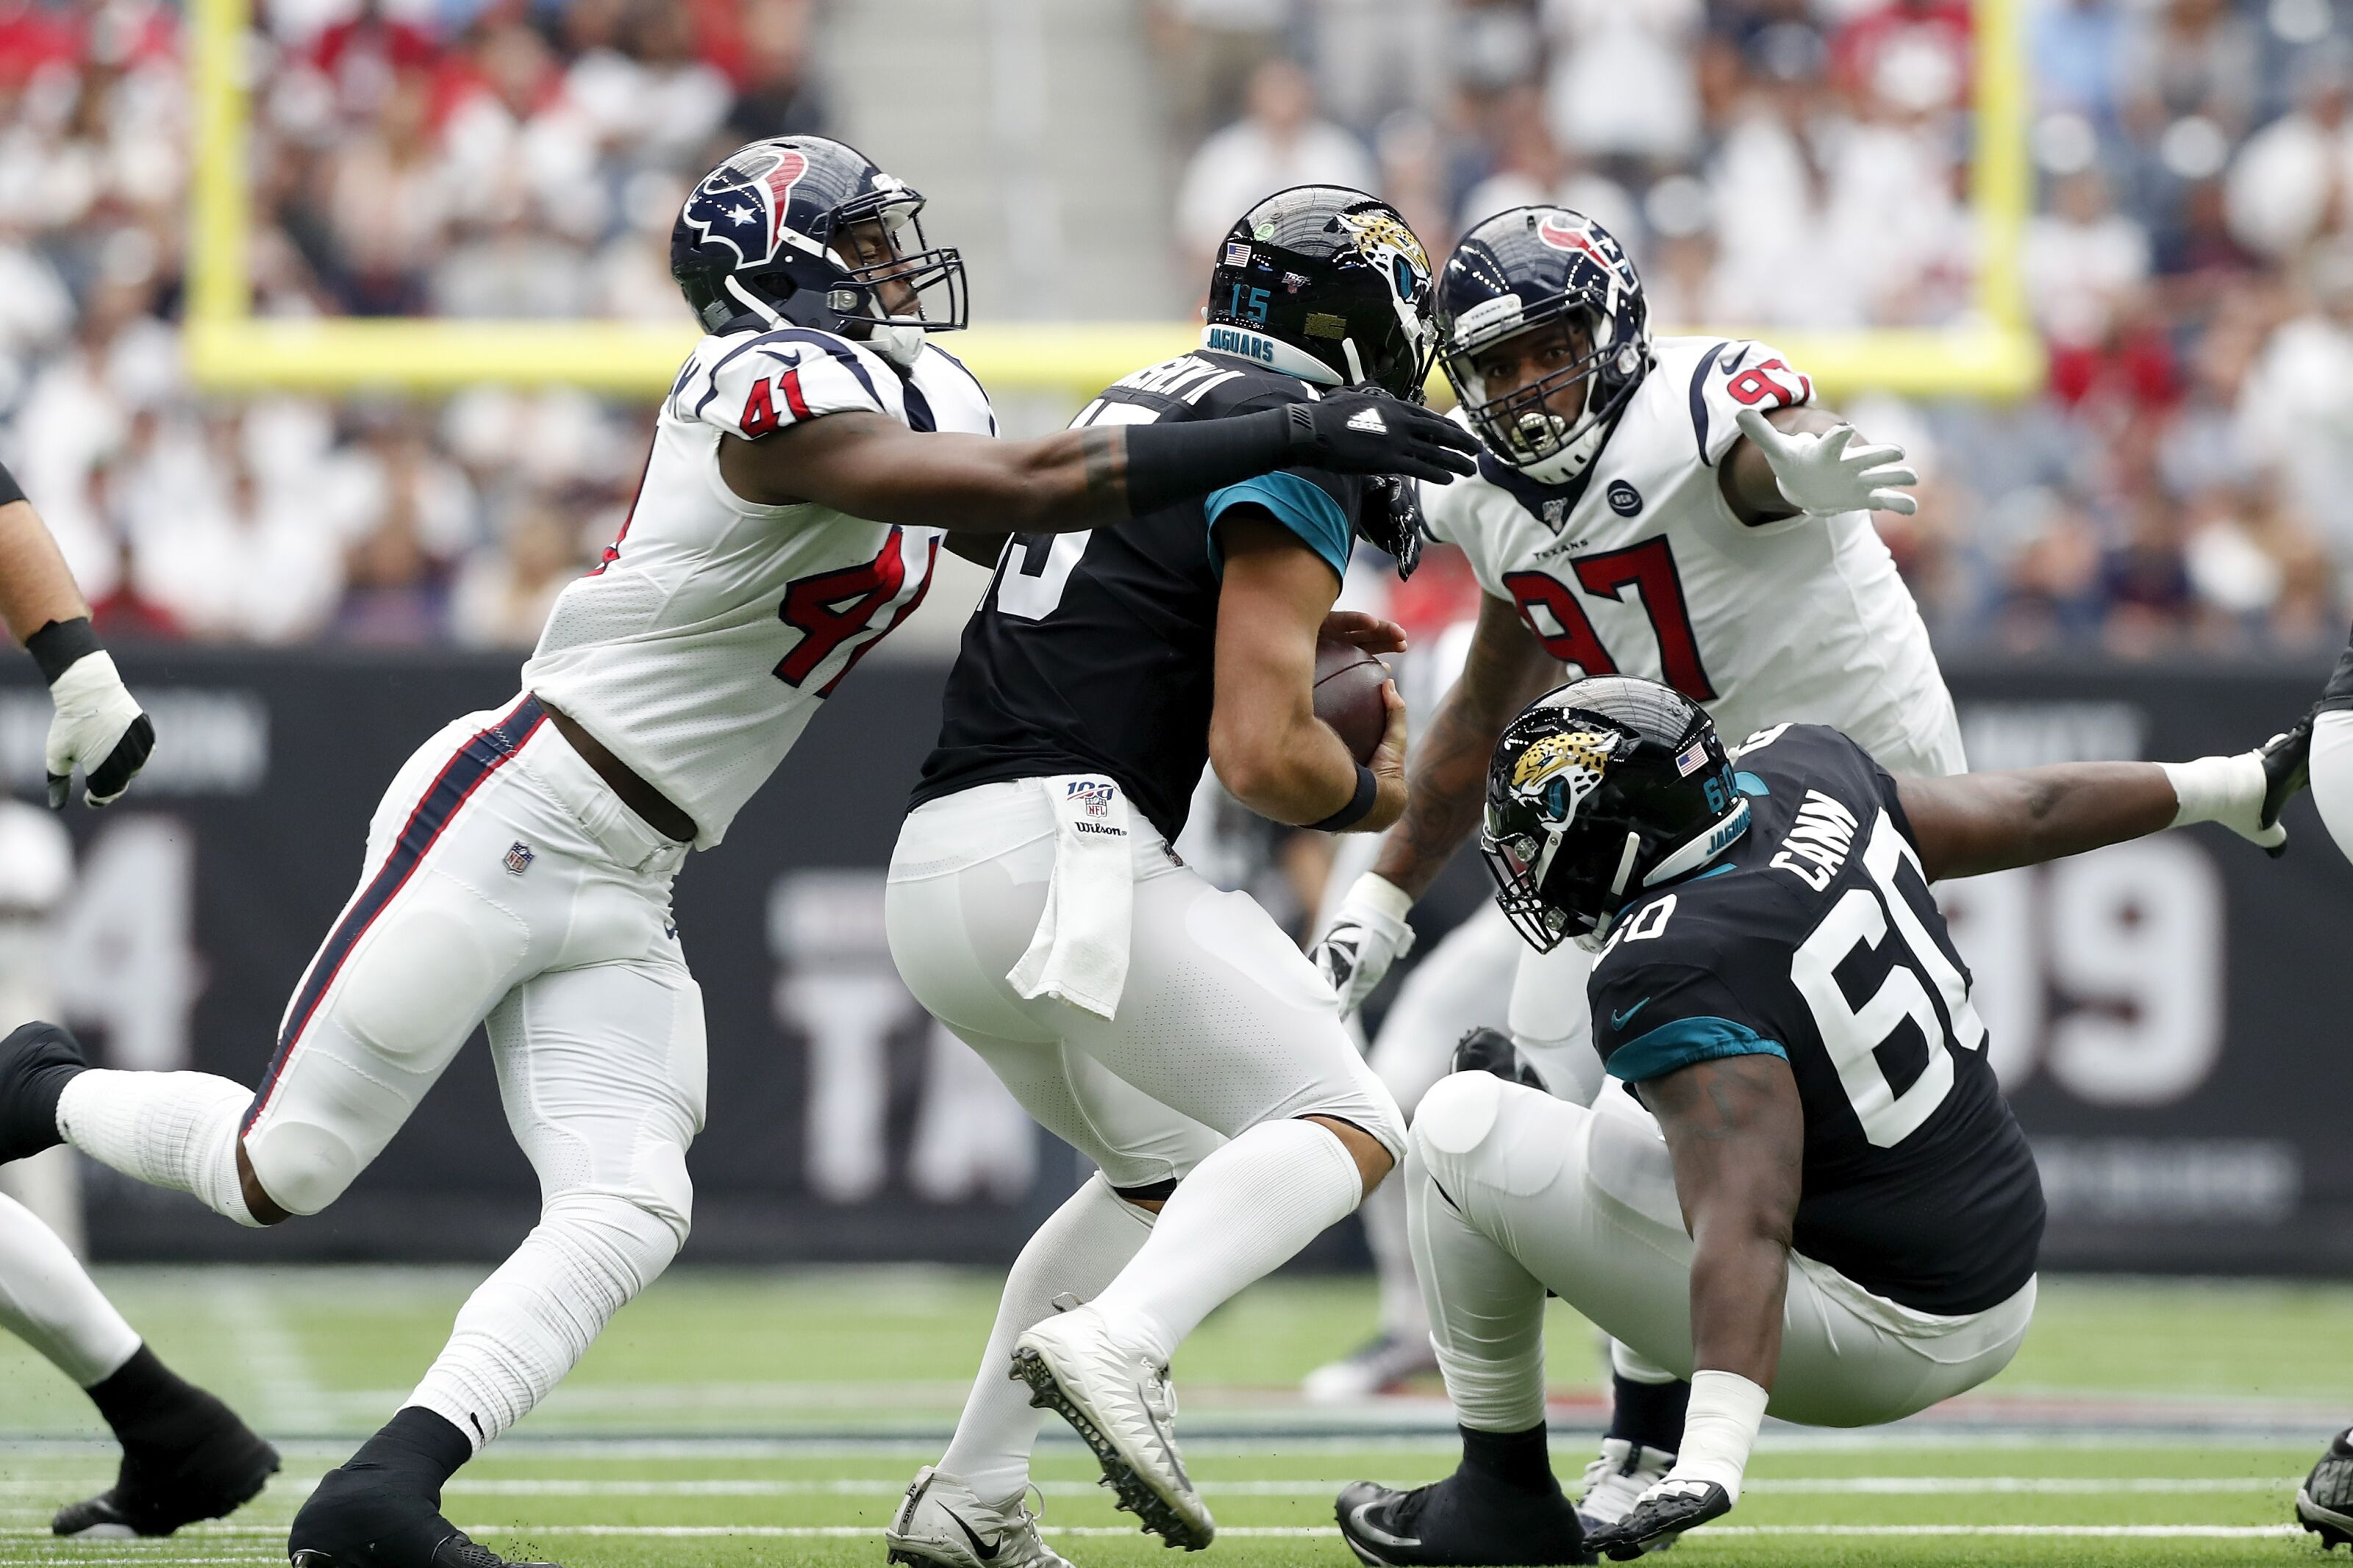 Jacksonville Jaguars just gave the Tennessee Titans defense a gift